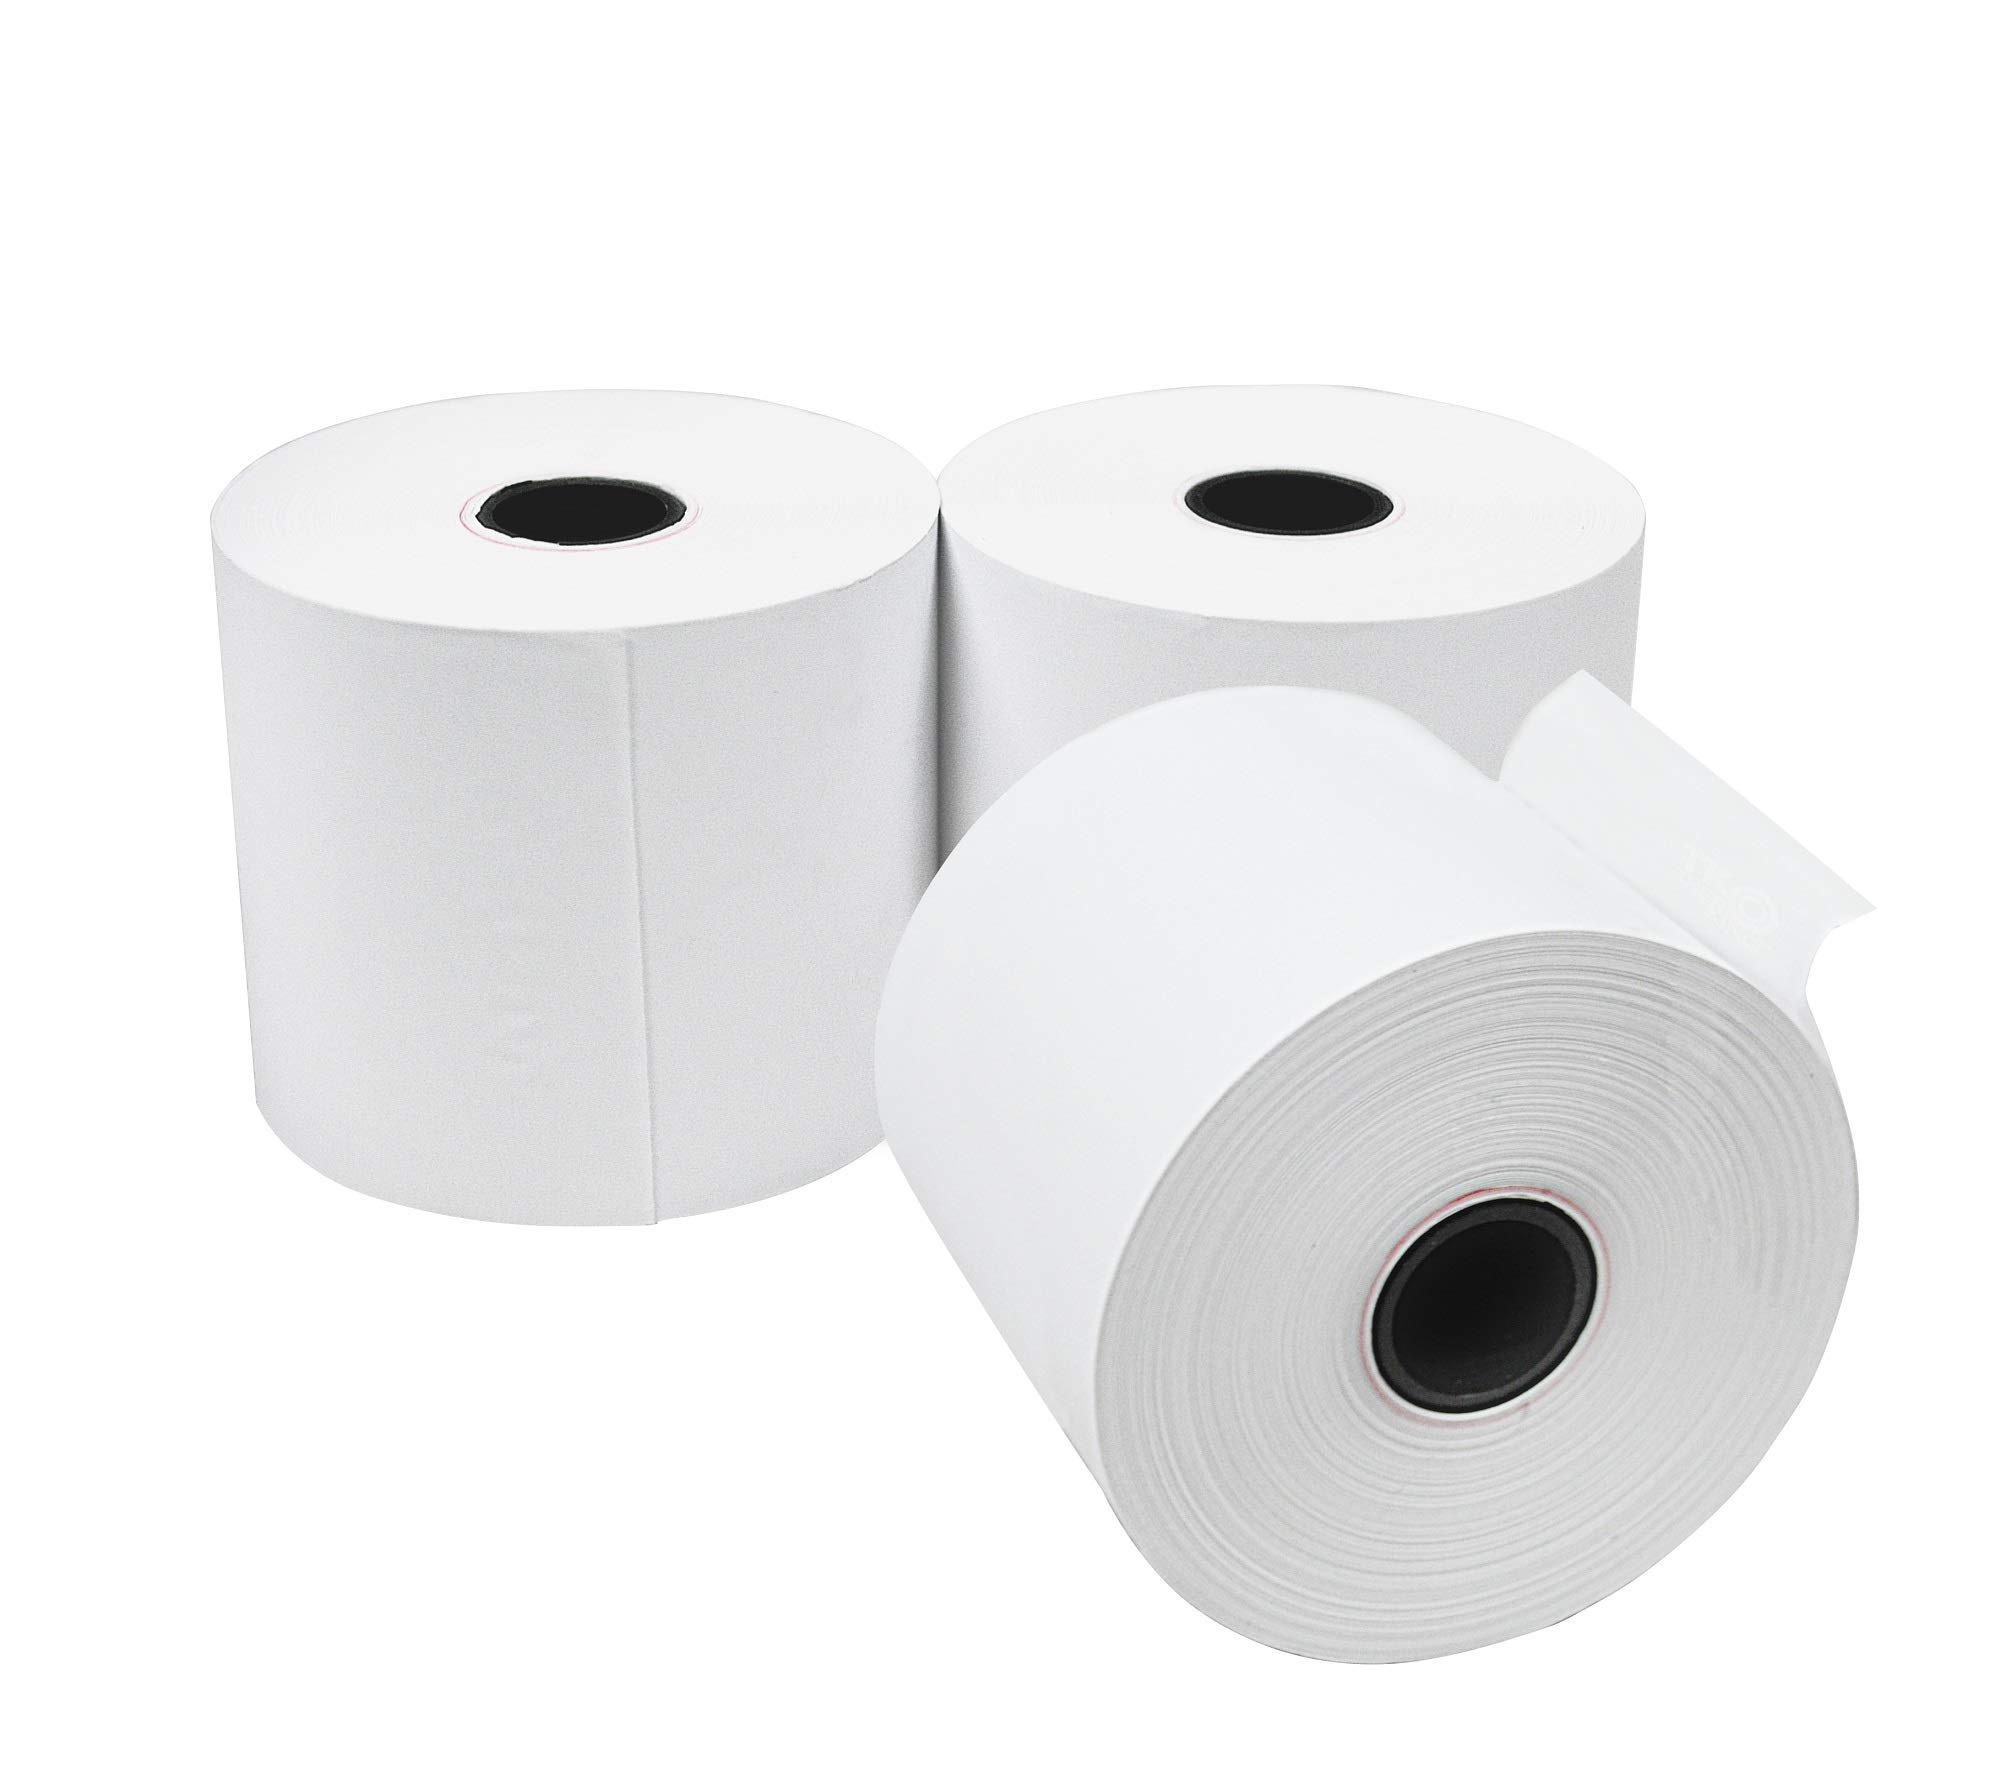 Thermal King, 2 1/4'' x 230' Thermal Paper, 50 Rolls [Thermal King Brand] by Thermal King